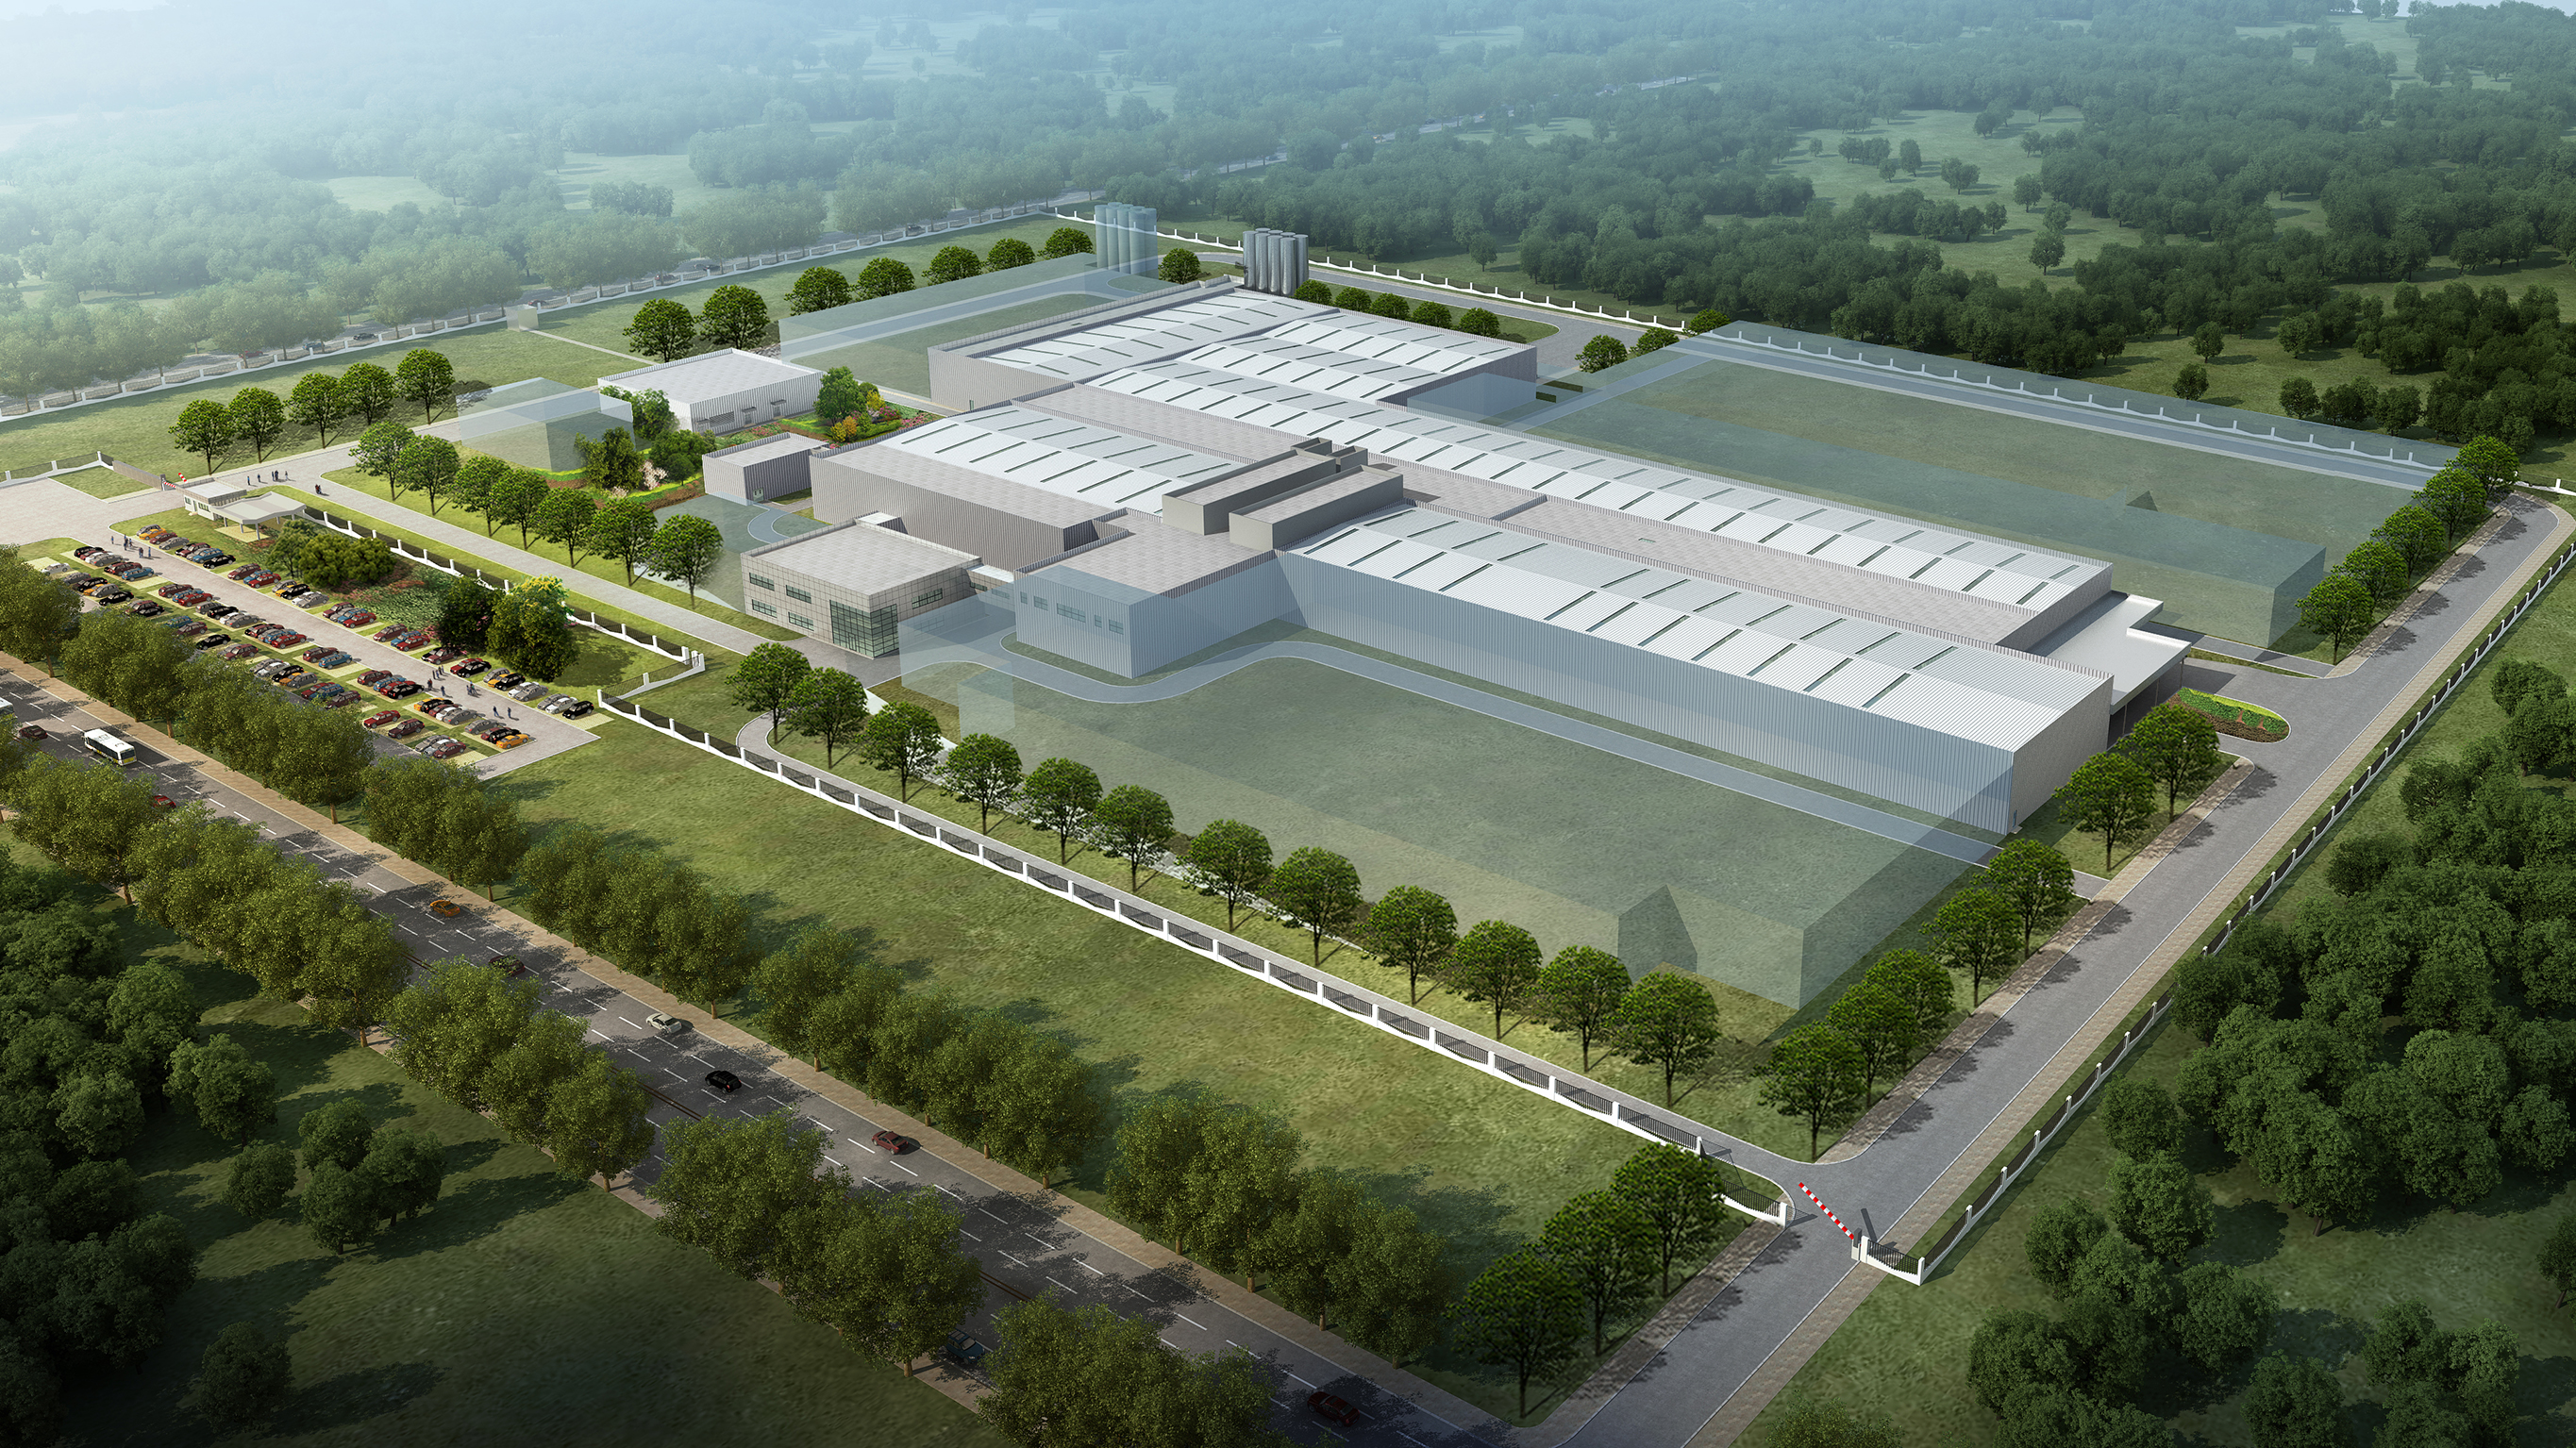 As the Asia-Pacific region continues its appetite for aseptic carton packaging, SIG has announced investment in the region with the construction of a second production plant in Suzhou, China. (Picture: SIG)